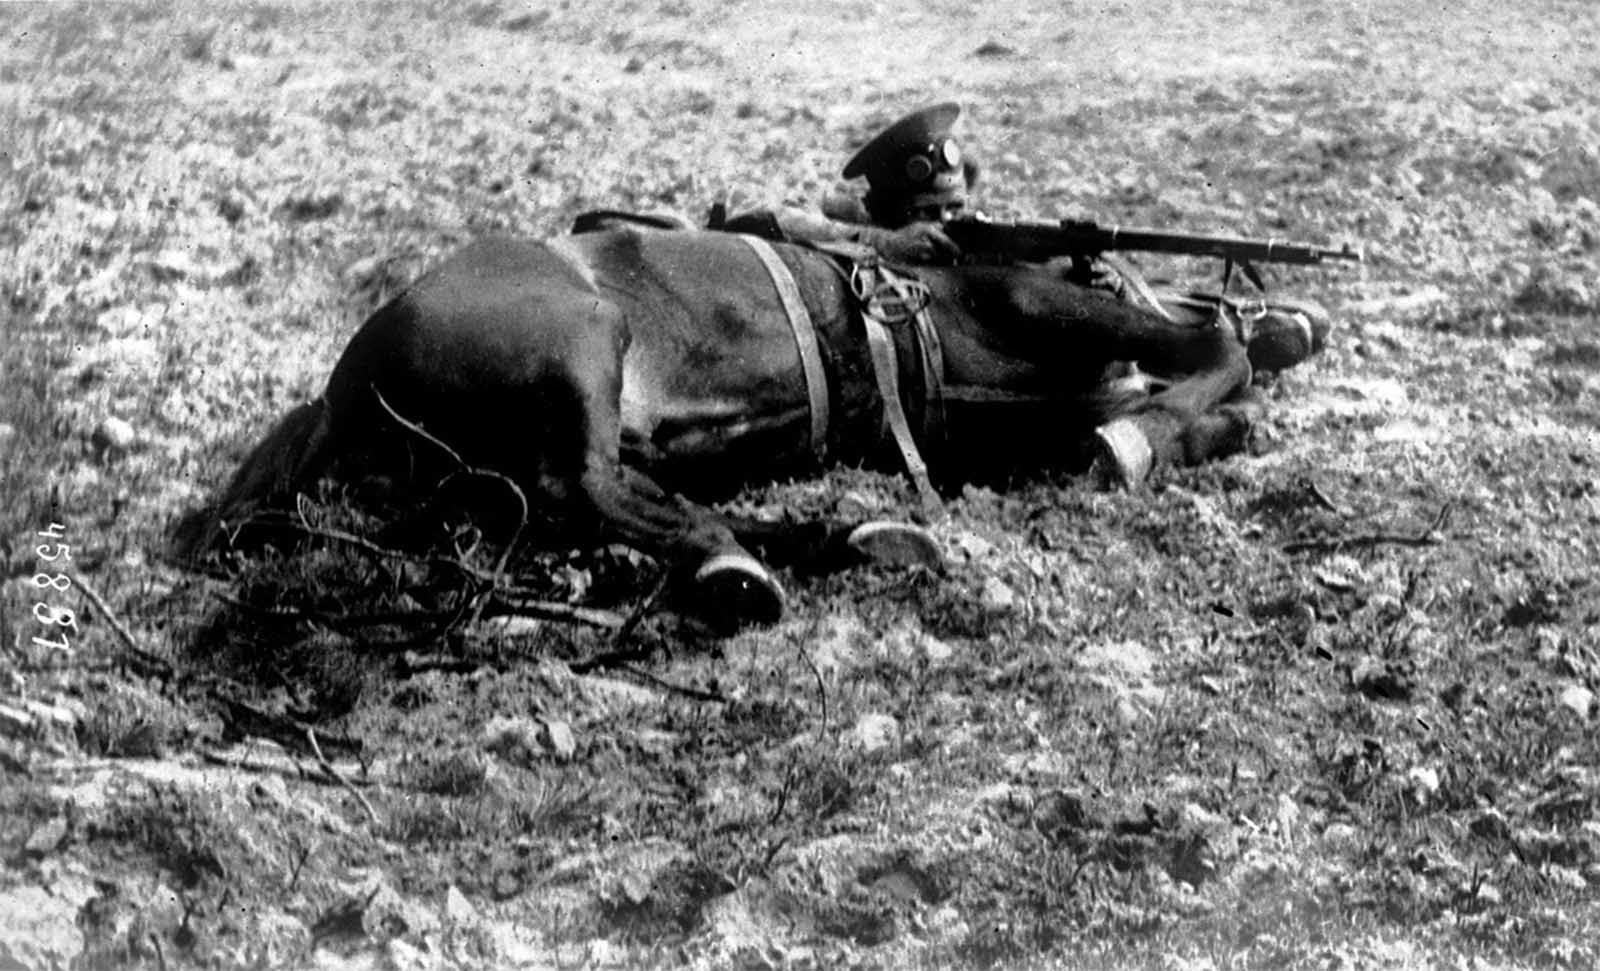 A Russian Cossack, in firing position, behind his horse, 1915.